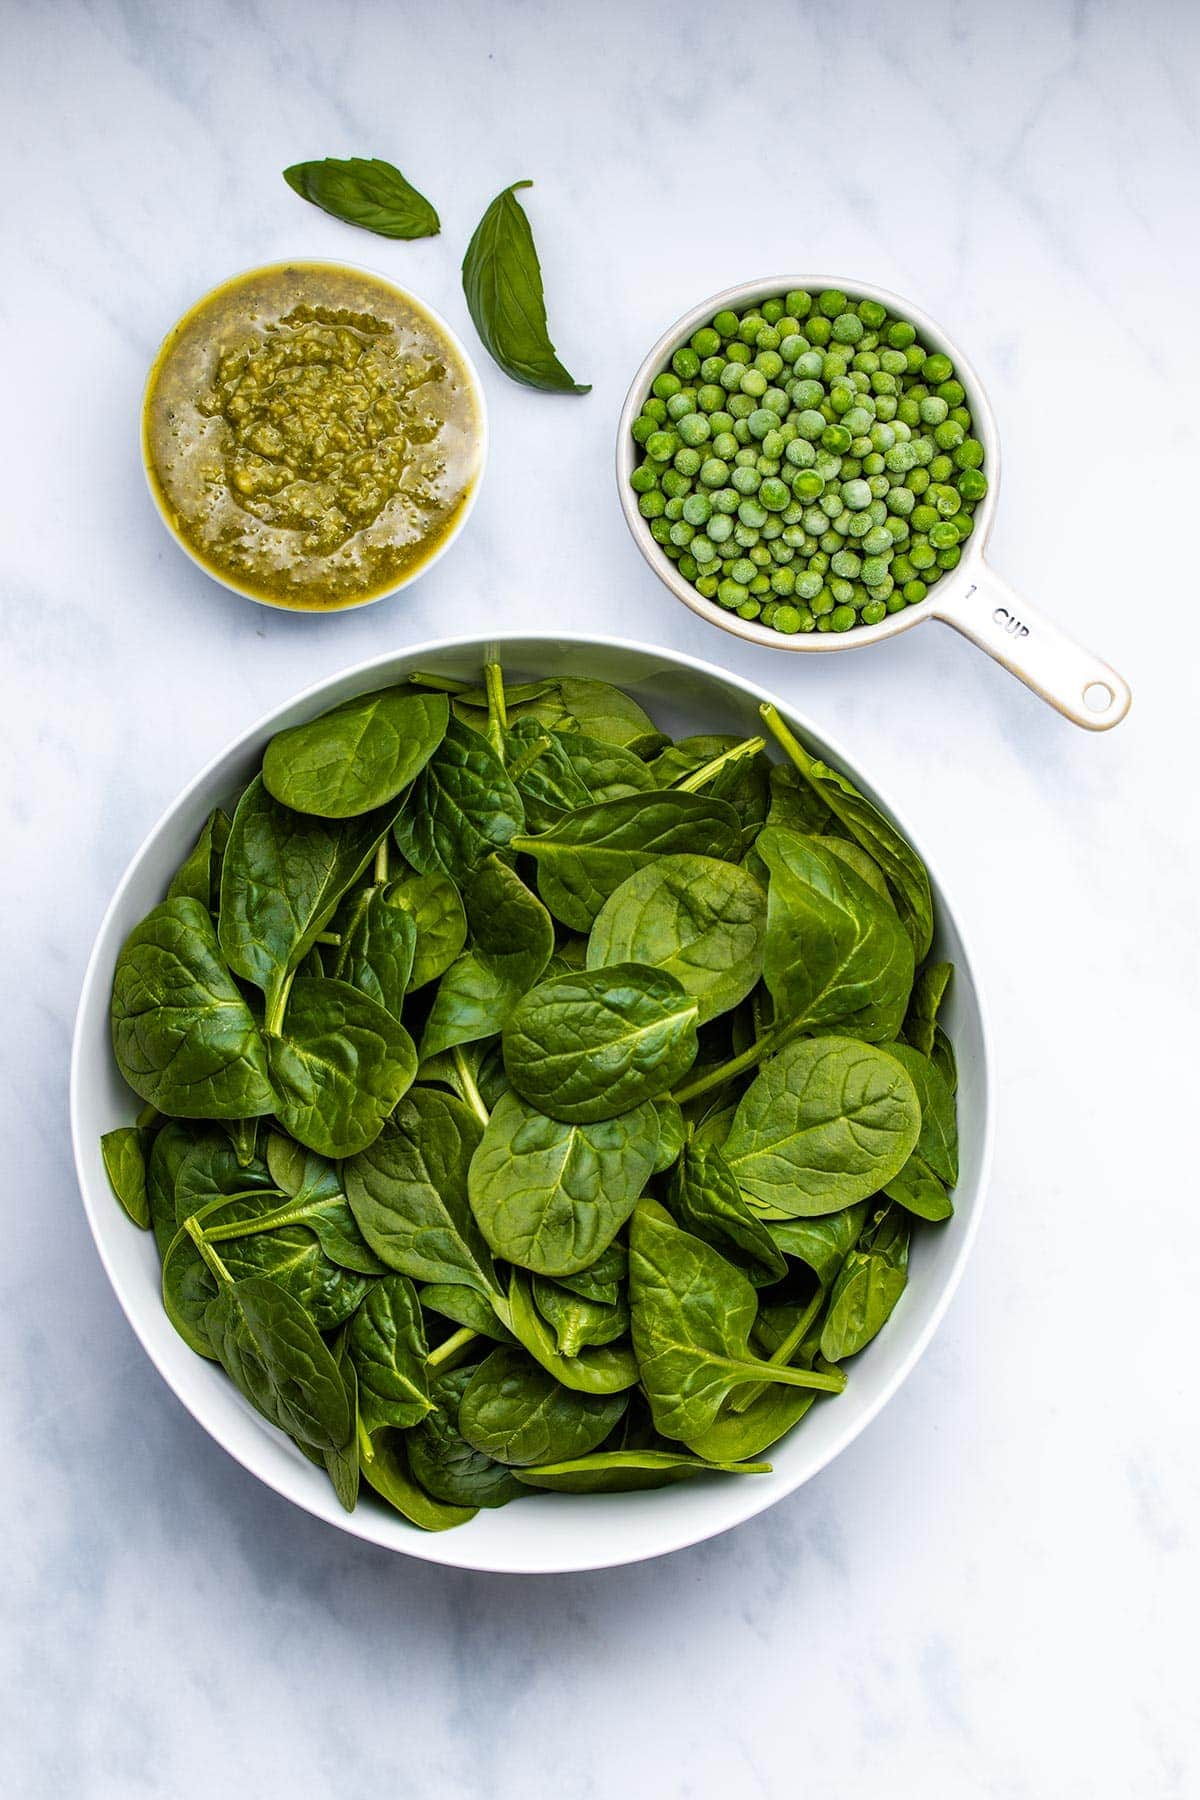 pesto, frozen peas and baby spinach in white bowls viewed from overhead